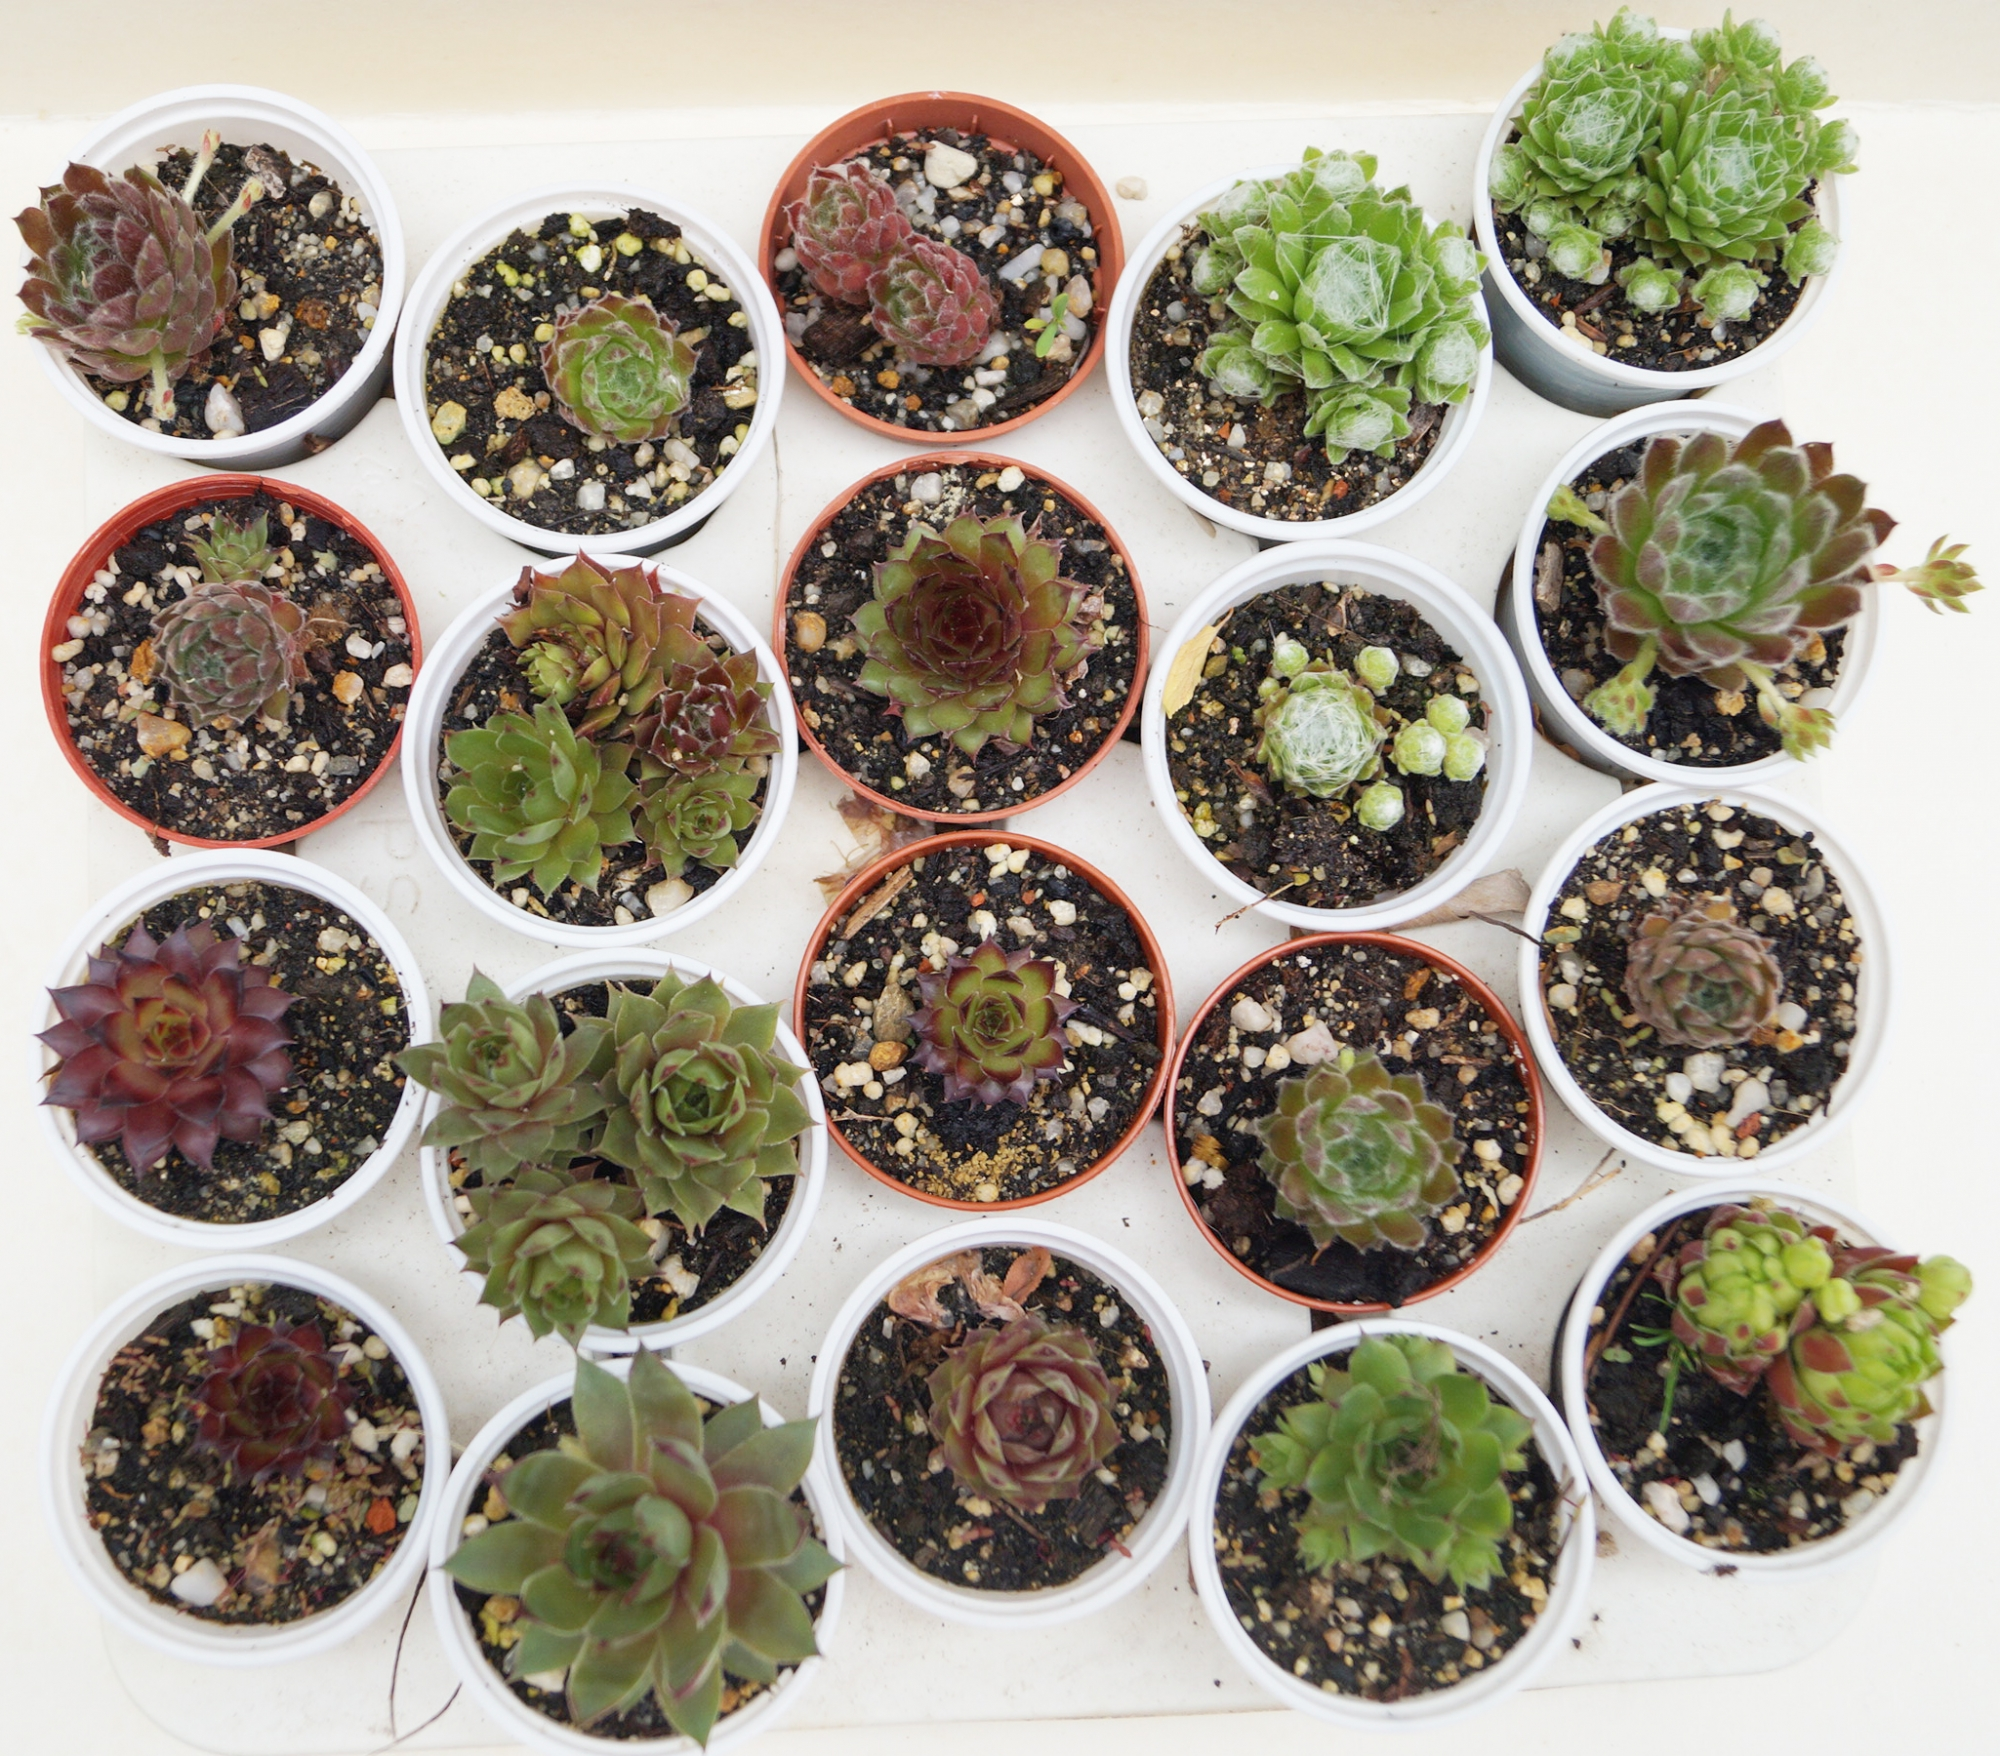 Семпервивум микс (Sempervivum mix)